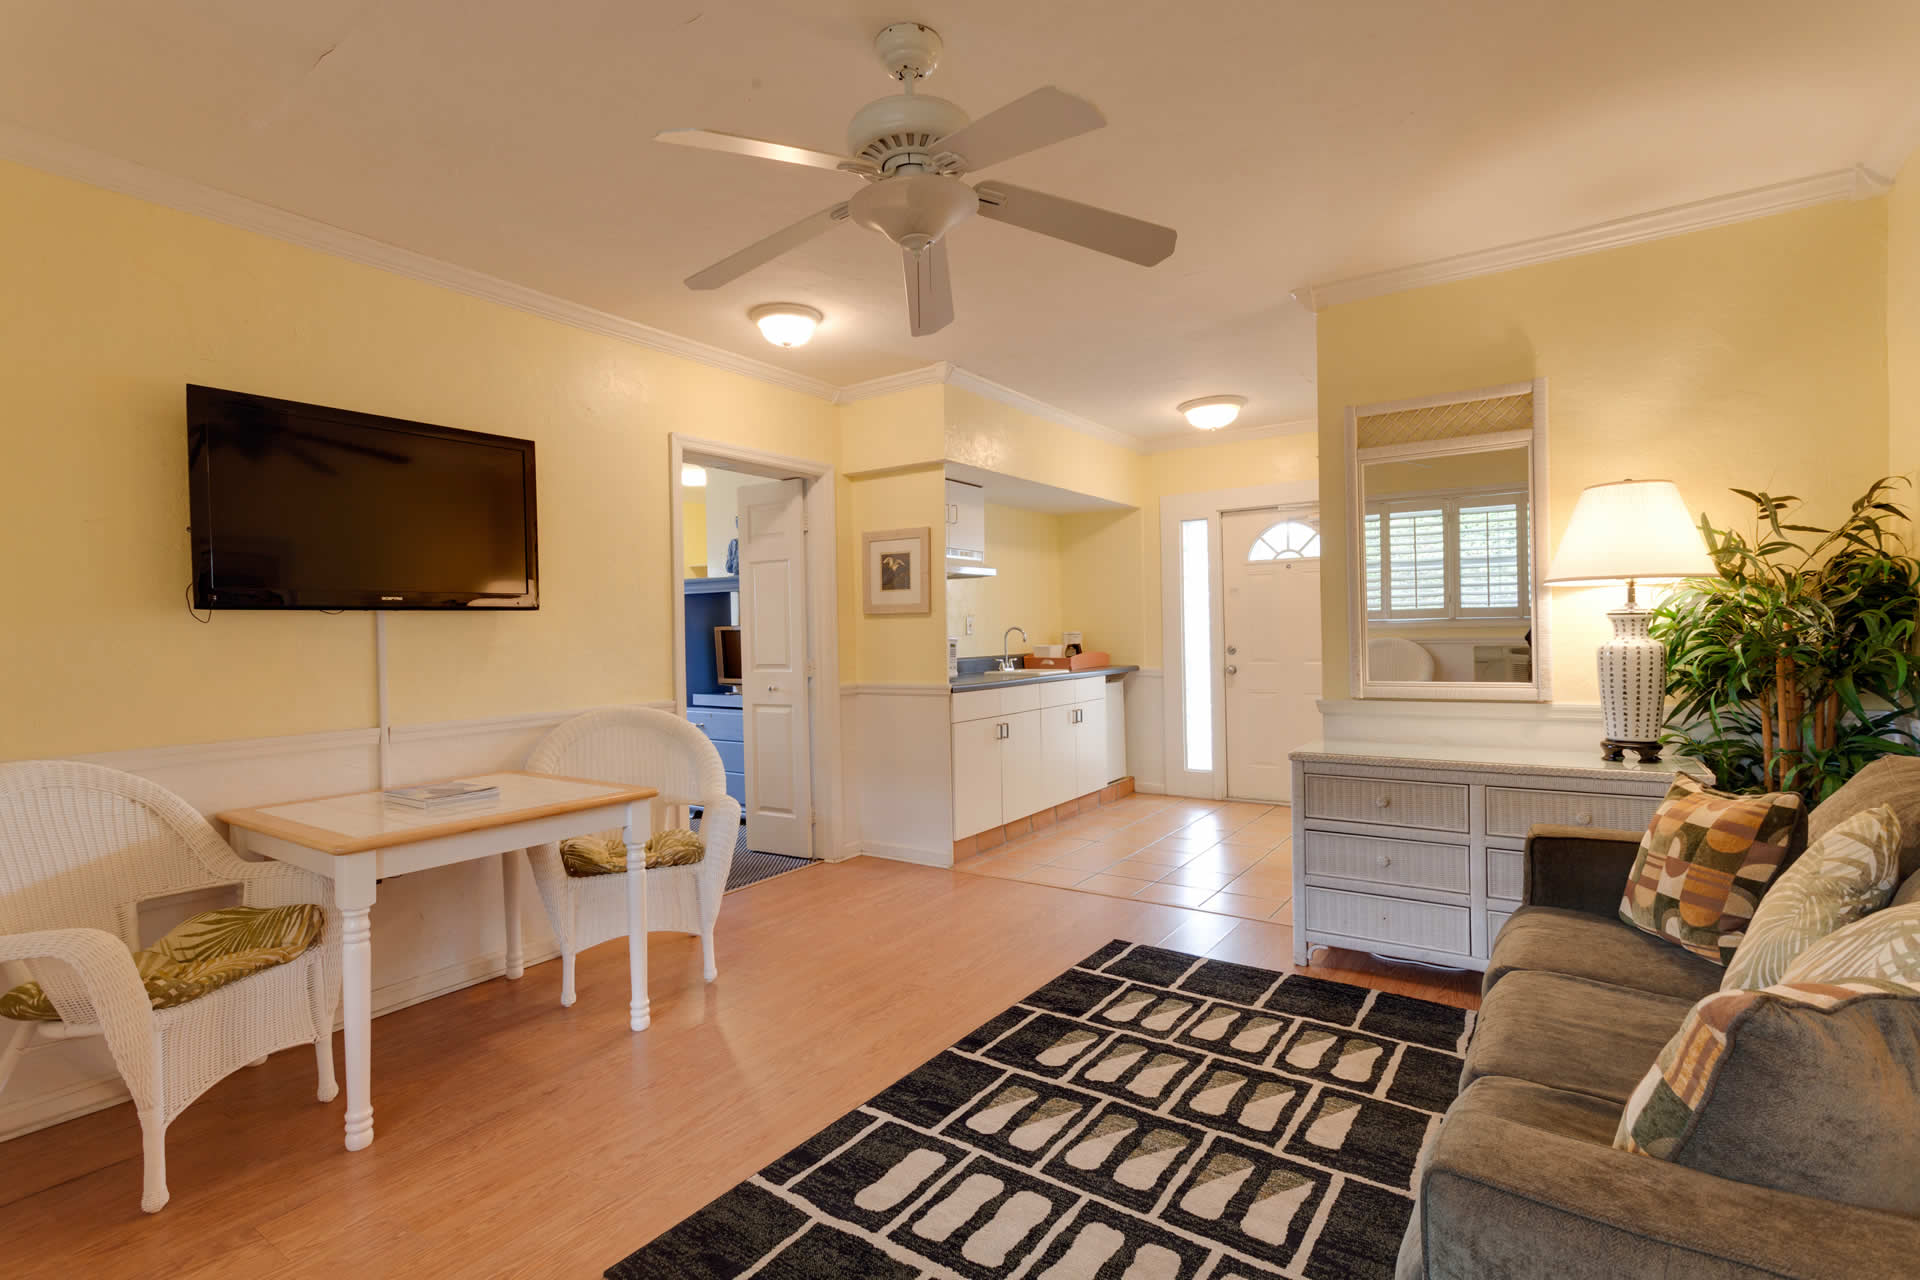 Suite 115-2 at Lemon Tree Inn of Naples, FL